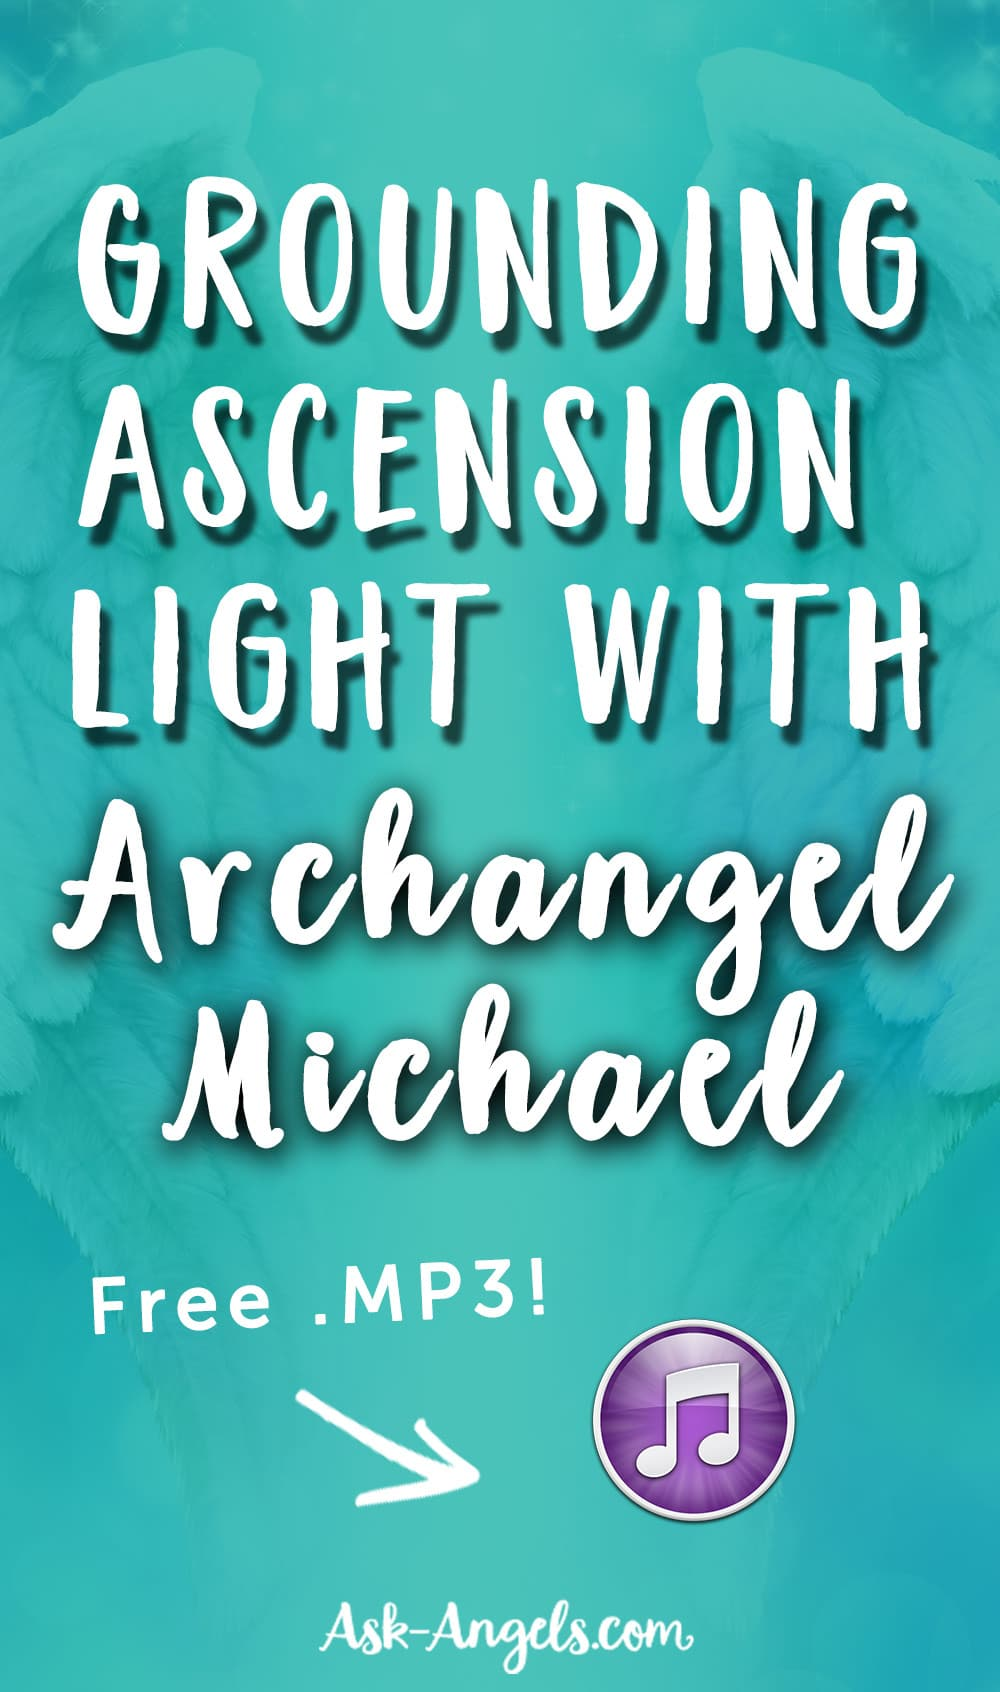 Grounding Ascension Light with Archangel Michael